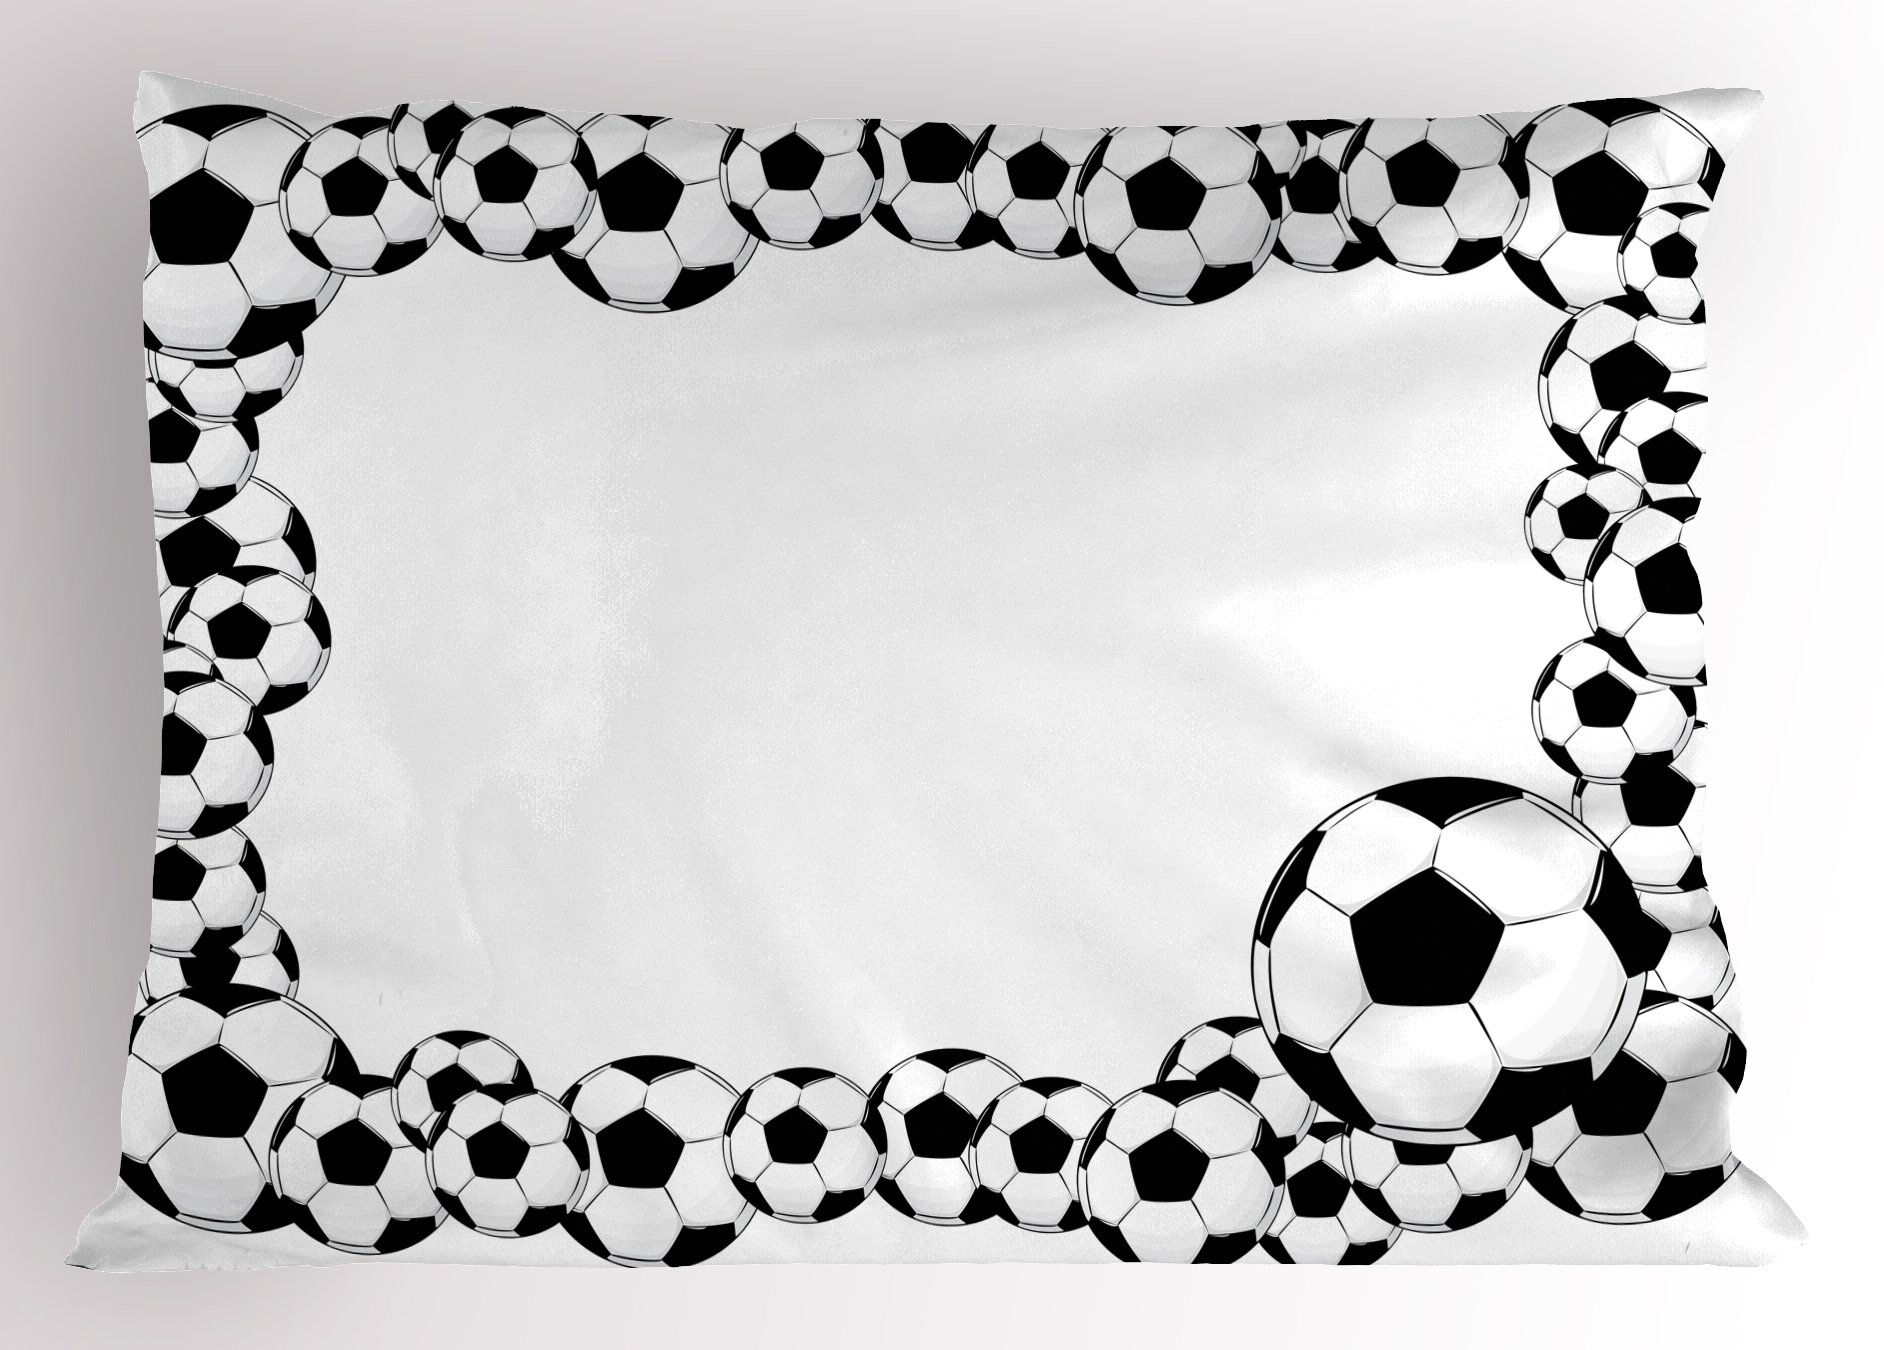 Ambesonne Soccer Pillow Sham, Monochrome Football Frame Pattern Abstract Illustration Playing Sports Game, Decorative Standard King Size Printed Pillowcase, 36 X 20 inches, White Charcoal Grey